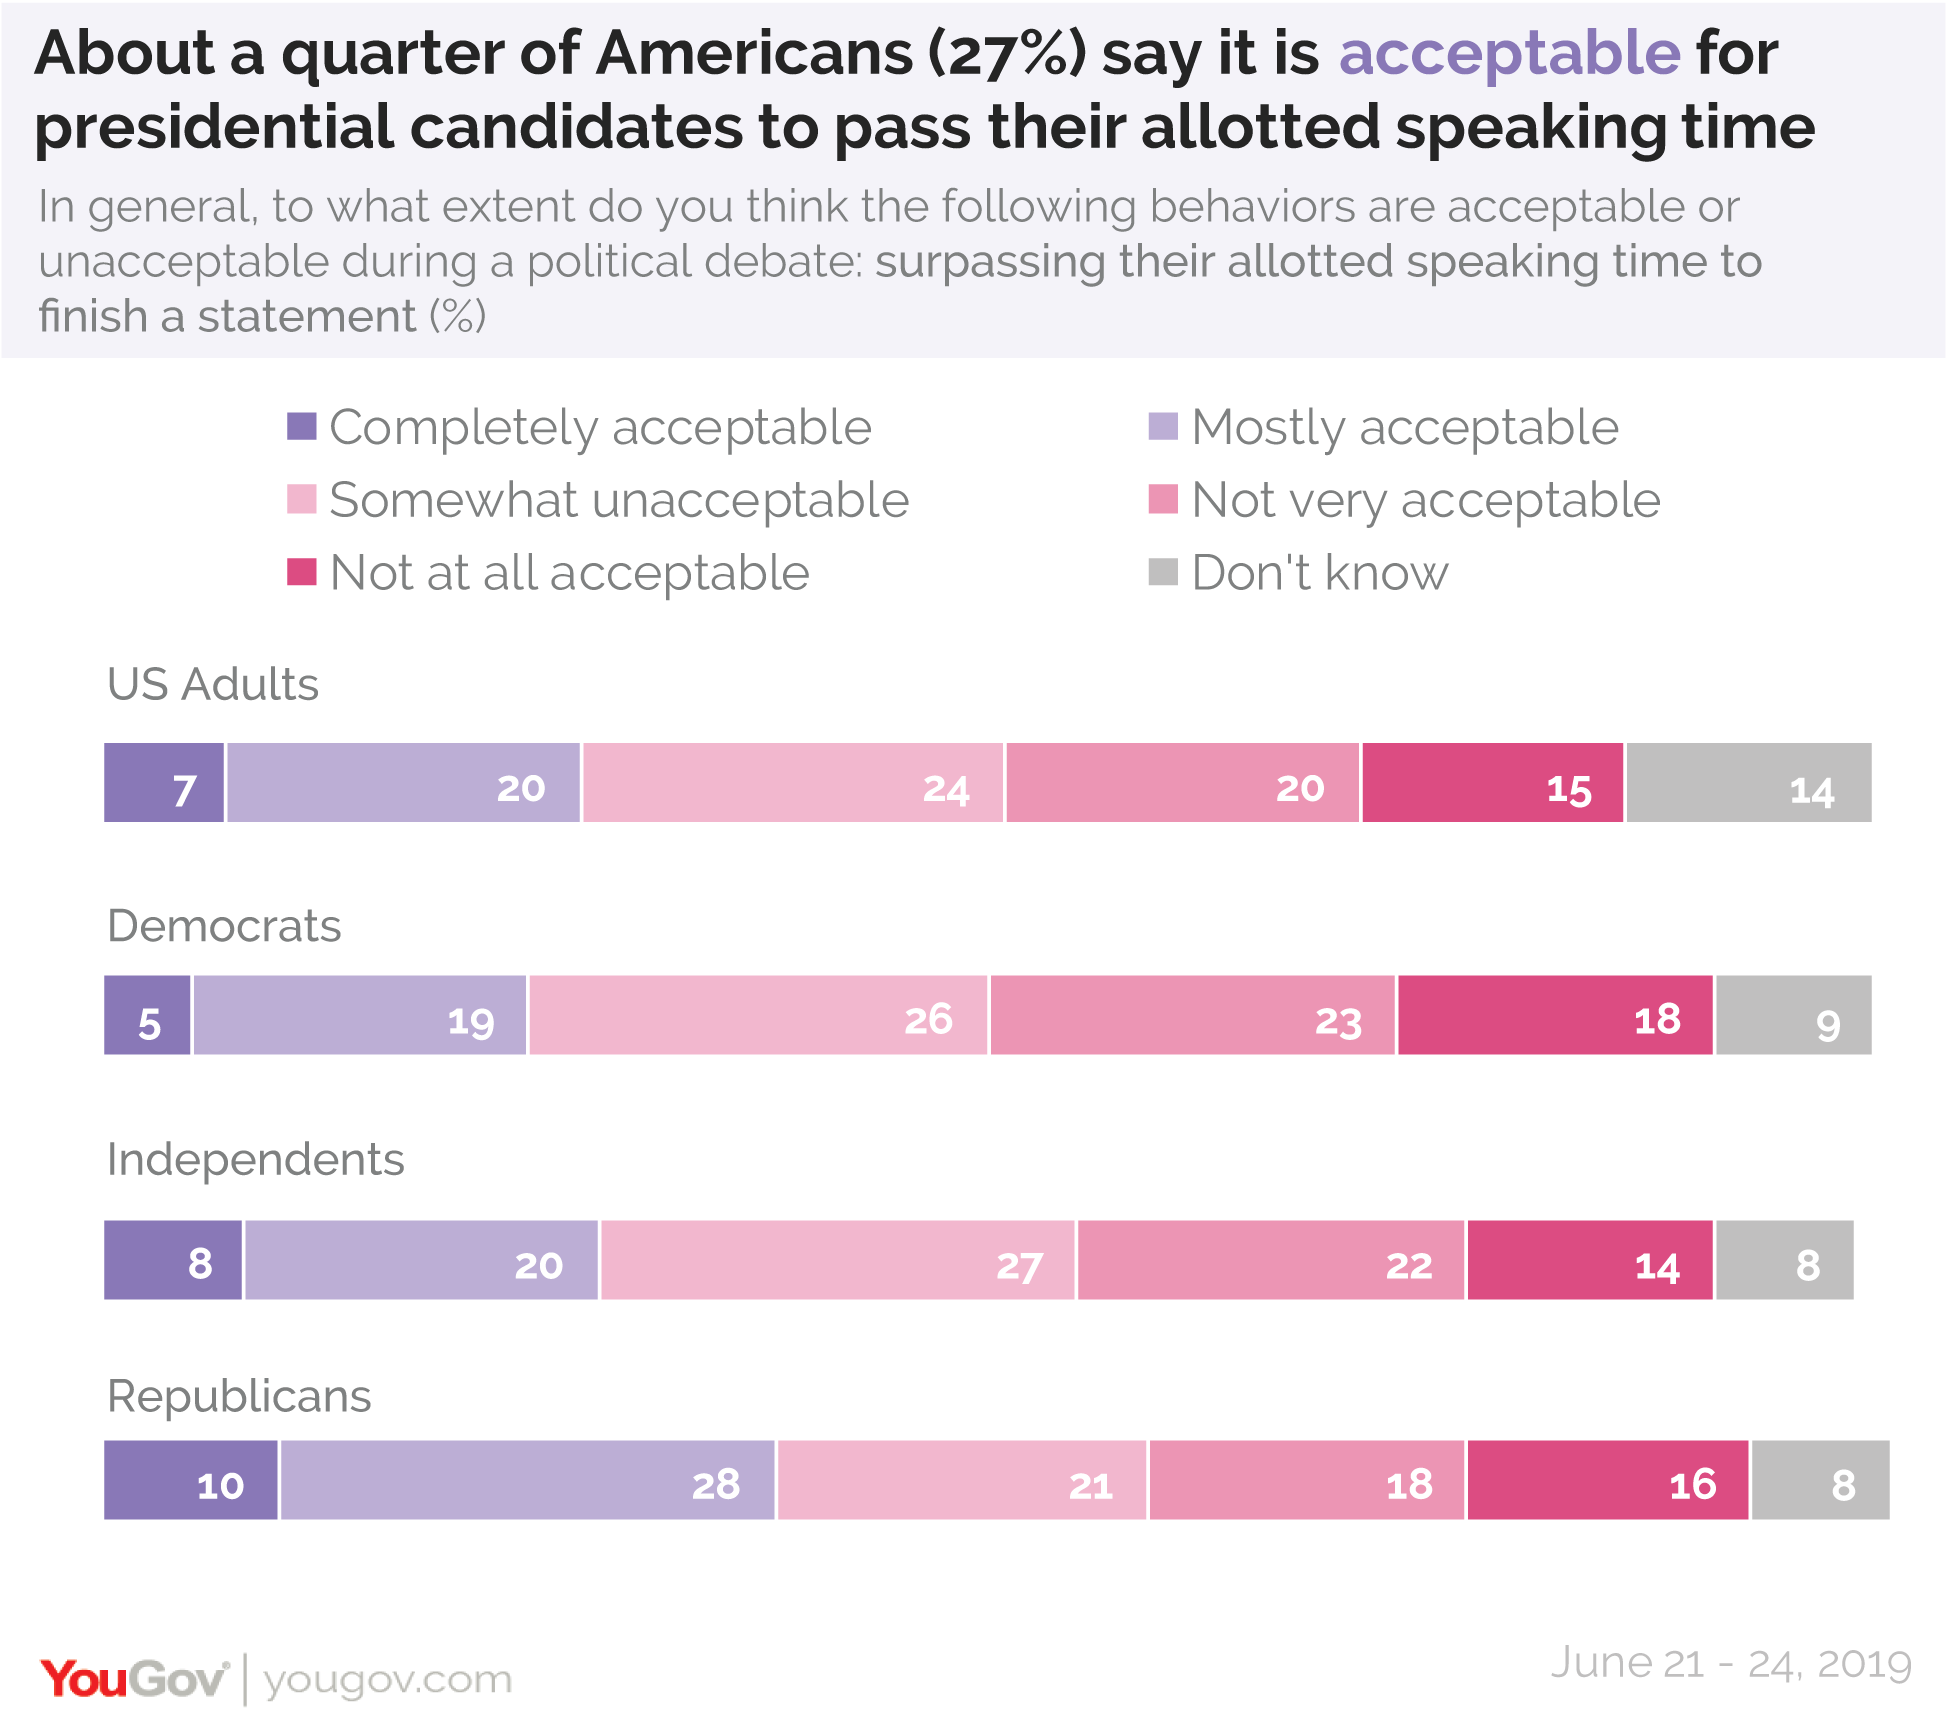 About a quarter of Americans say it is acceptable for presidential candidates to pass their allotted speaking time